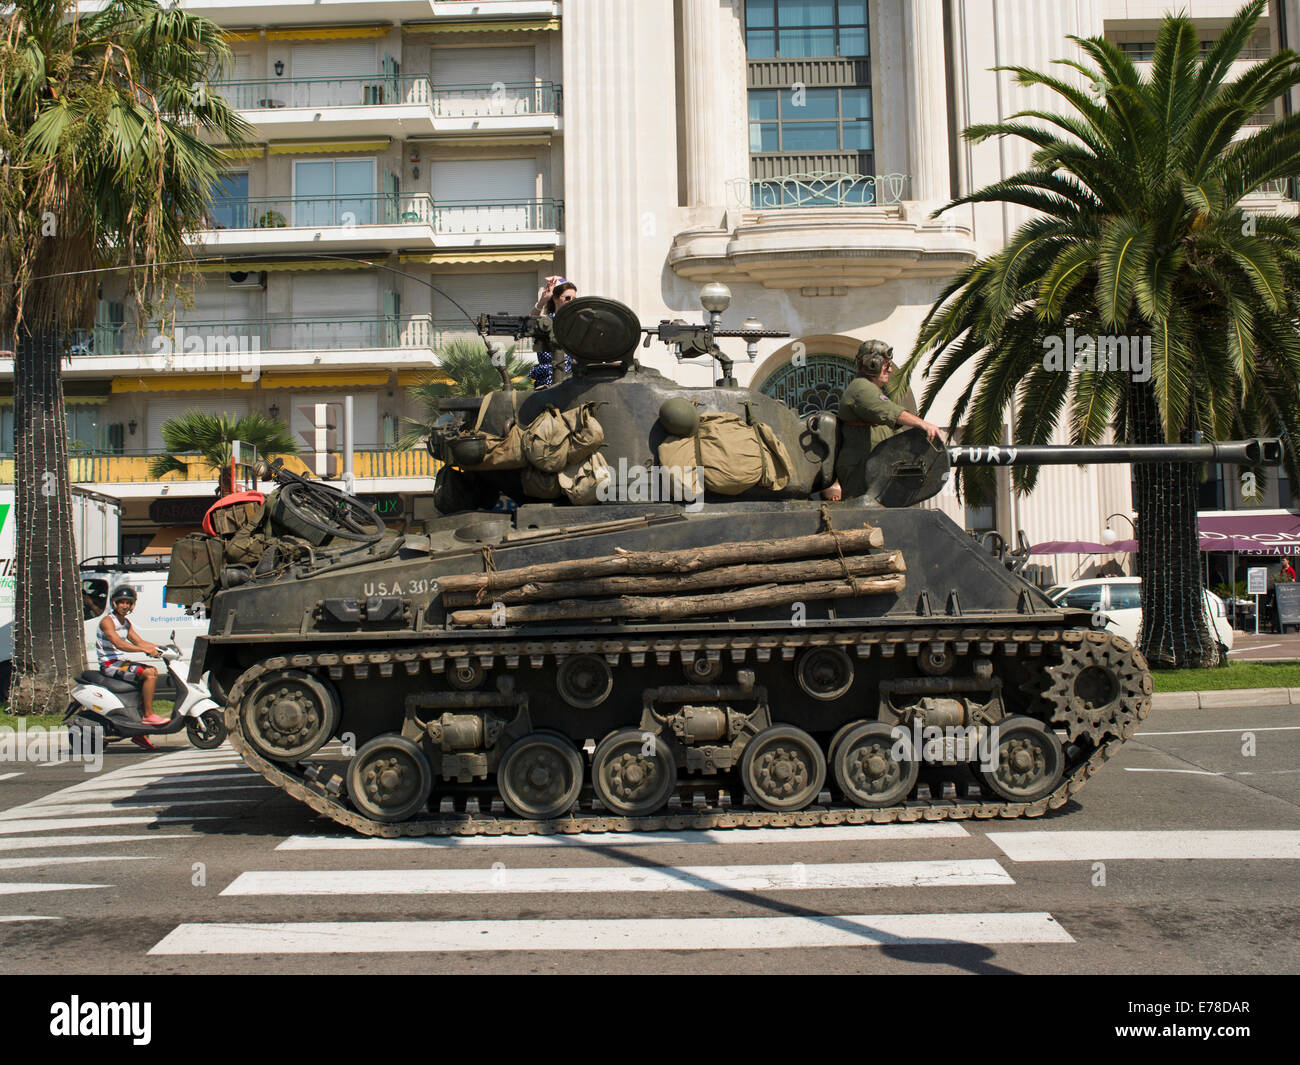 World War II tanks on parade during a commemoration of the Allied liberation of southern France. - Stock Image